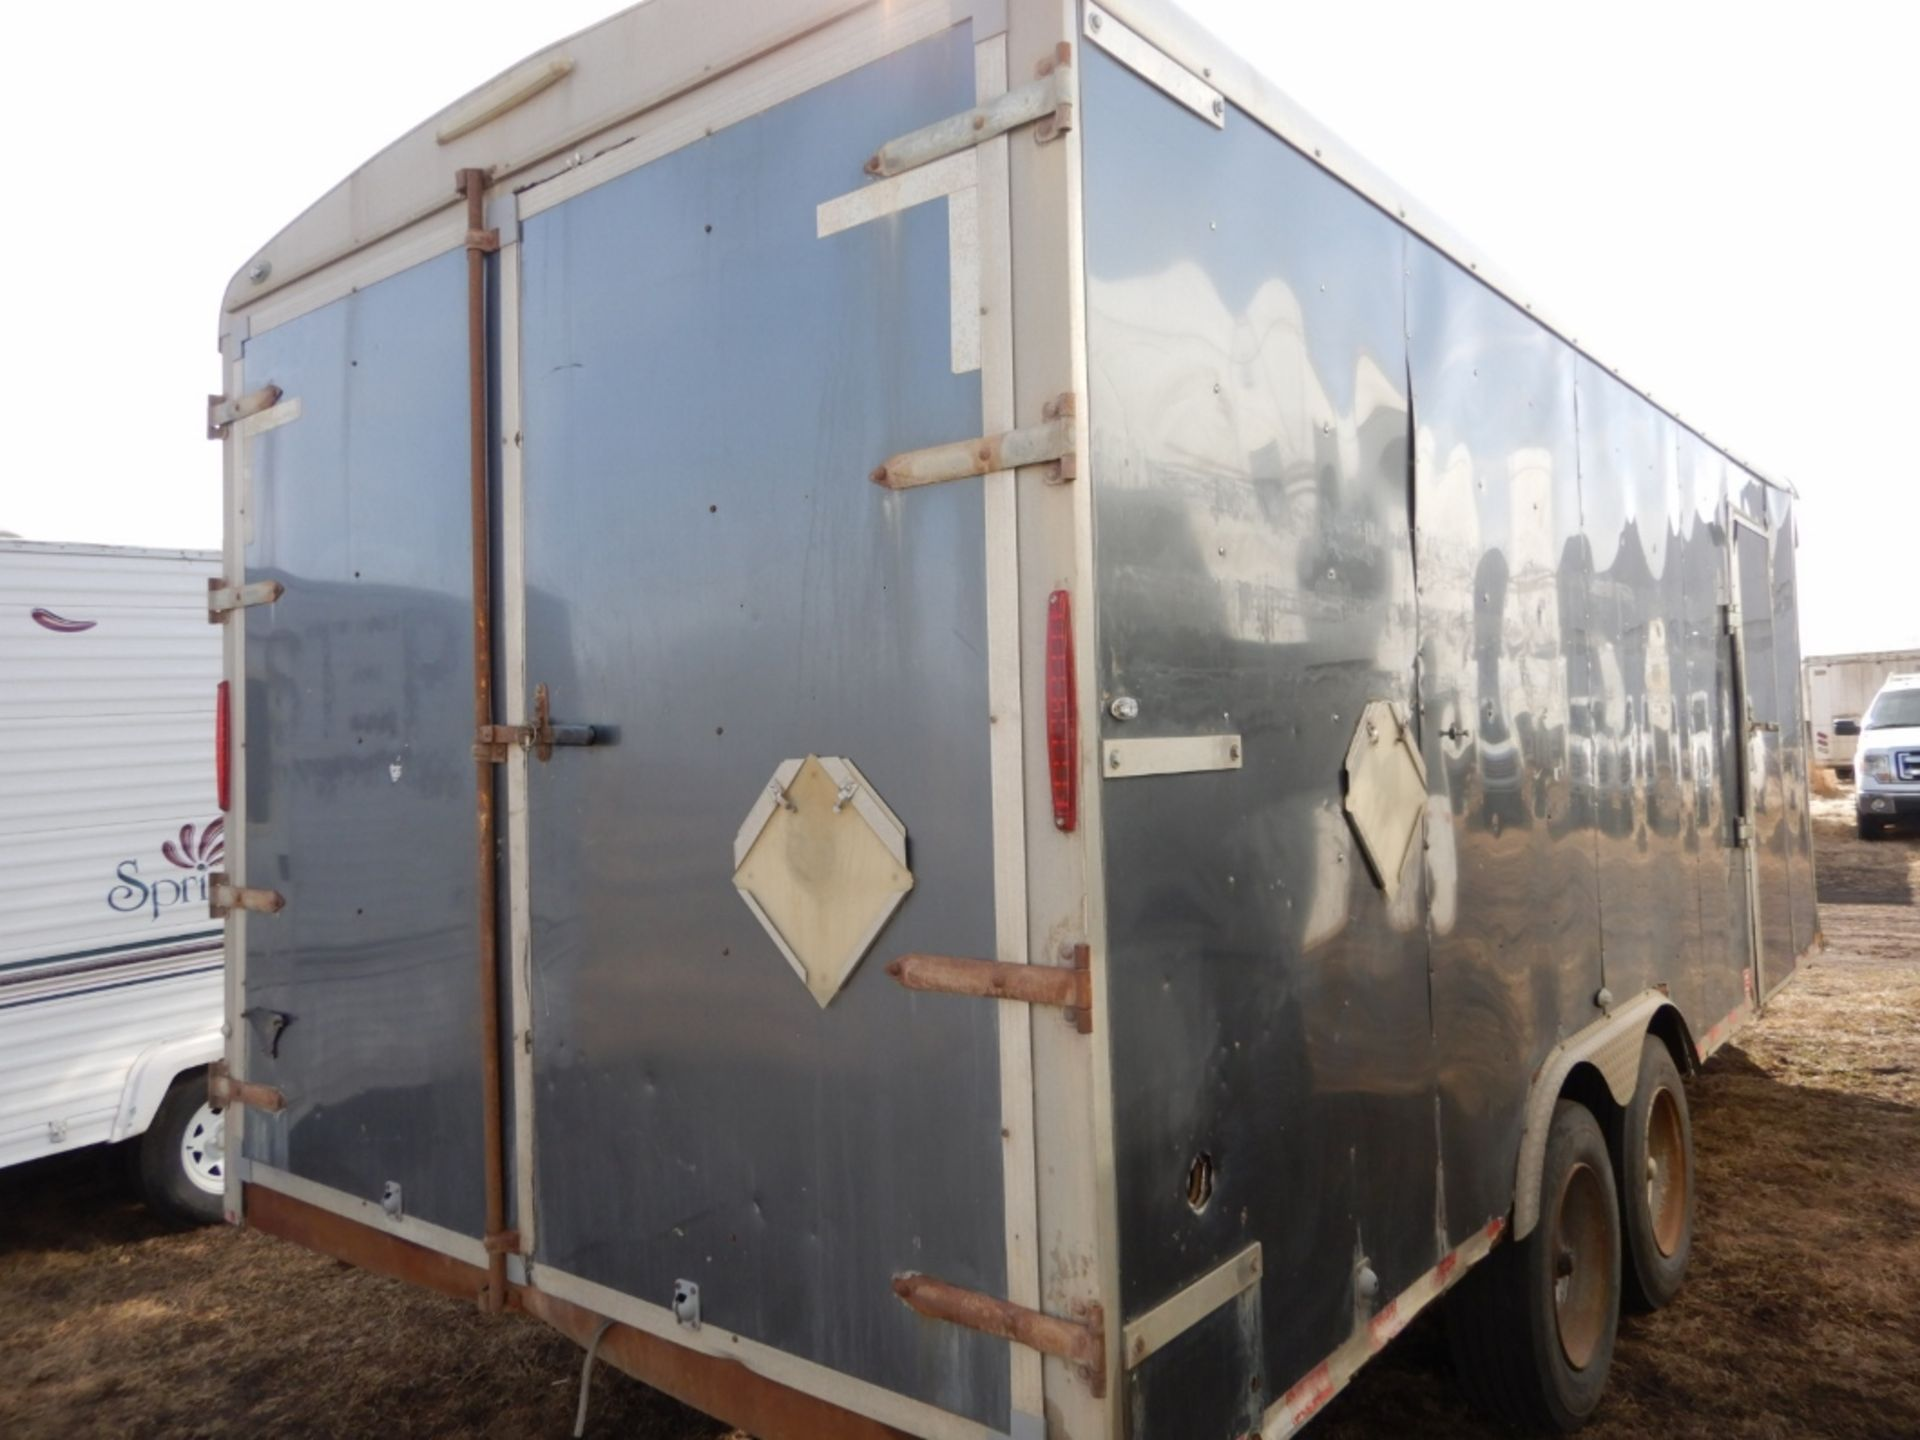 04/2012 TNT TRAILER - 20 FT T/A ENCLOSED TRAILER W/REAR BARN DOORS, S/N 5WBBE20226CW0058005 - Image 4 of 7